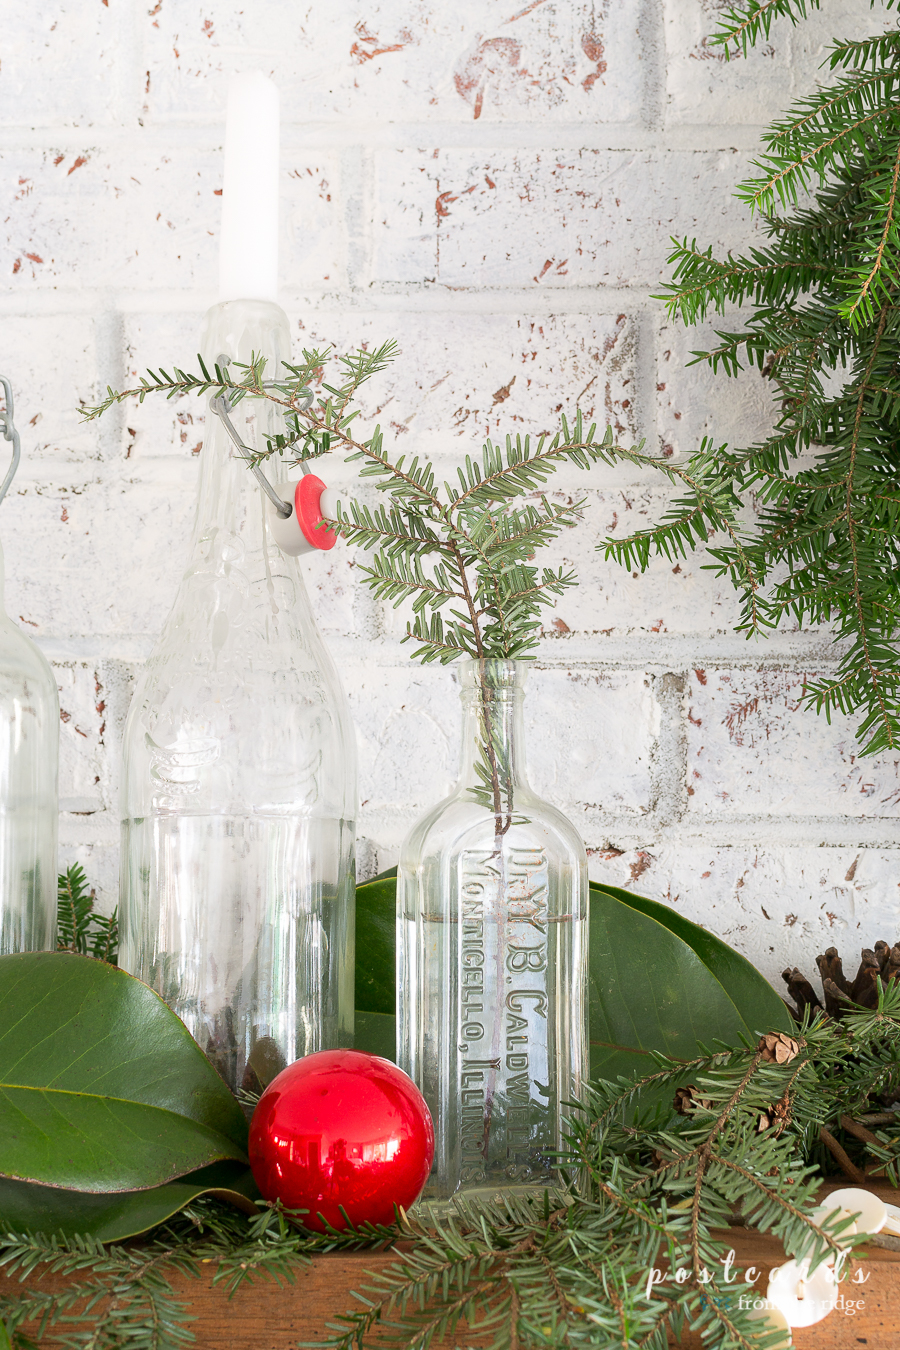 vintage glass bottles with candles and hemlock branches